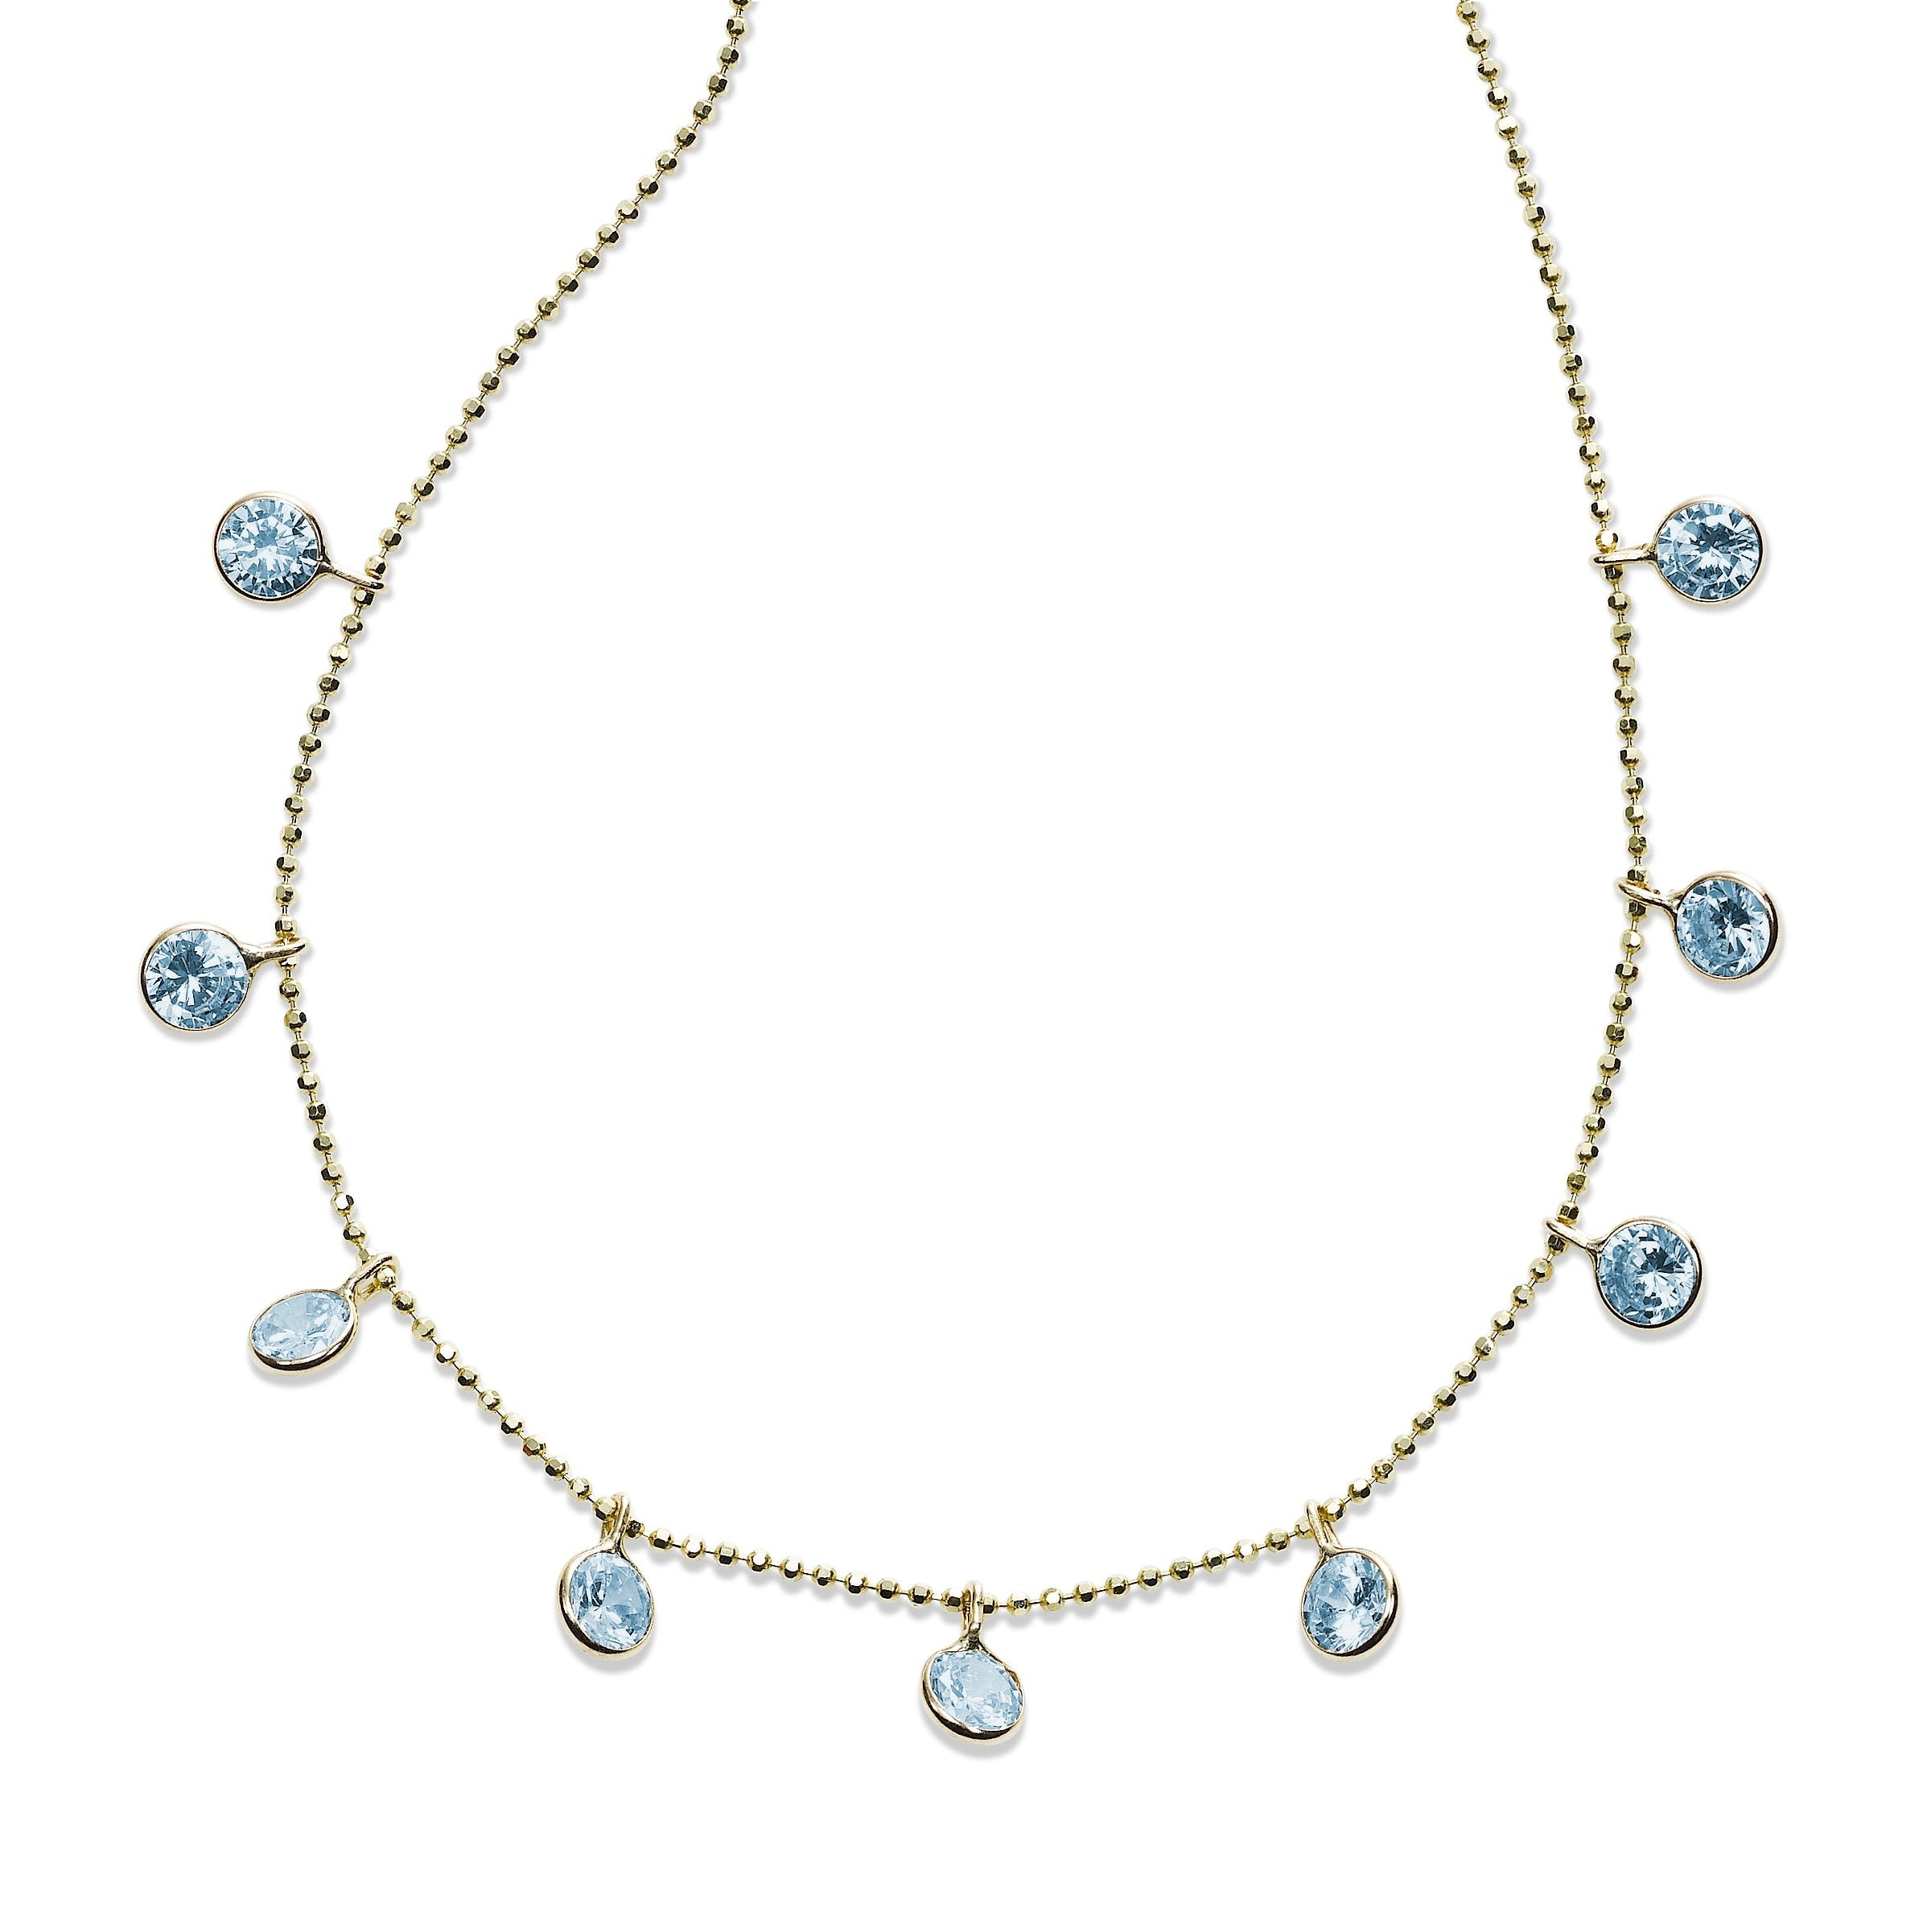 Bezel Set Blue Topaz Drop Necklace, 18 Inches, 14K Yellow Gold